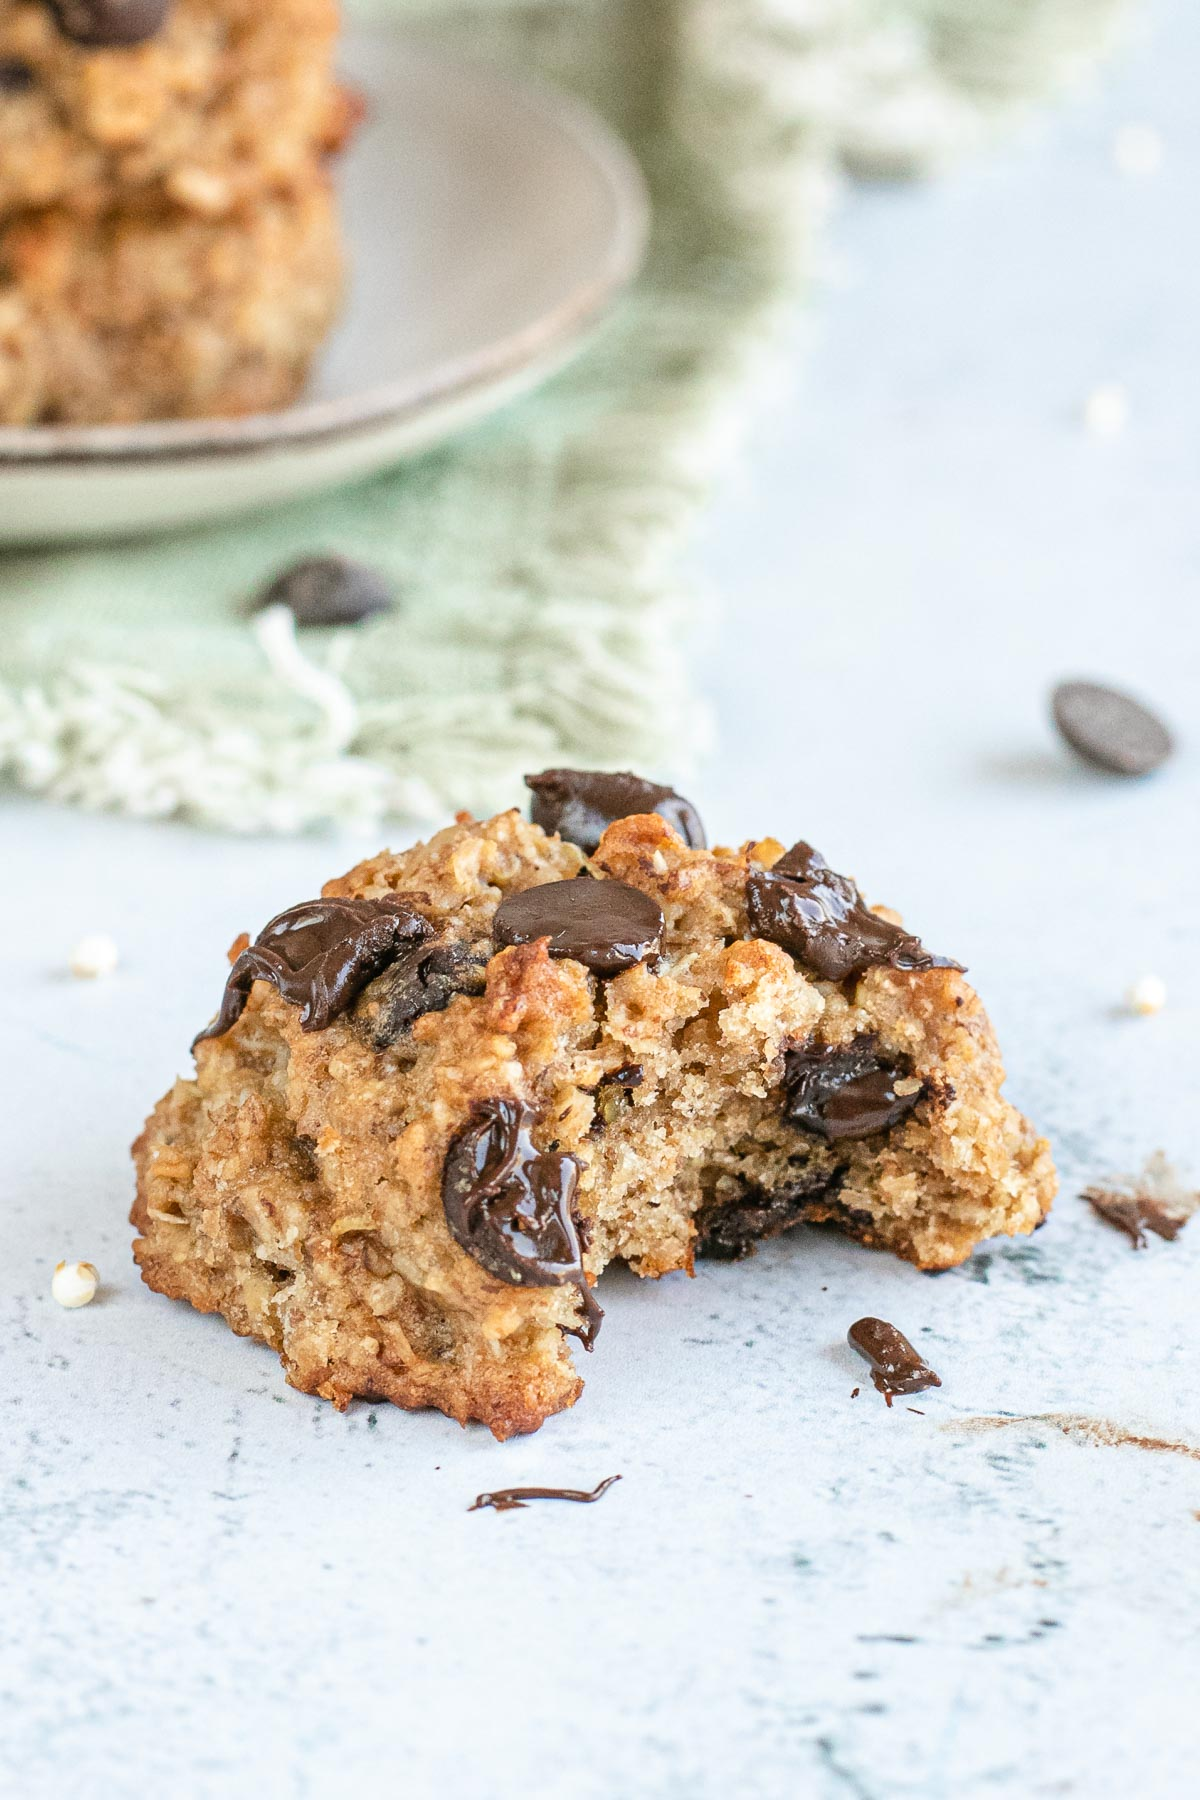 Quinoa Cookies with a bite taken